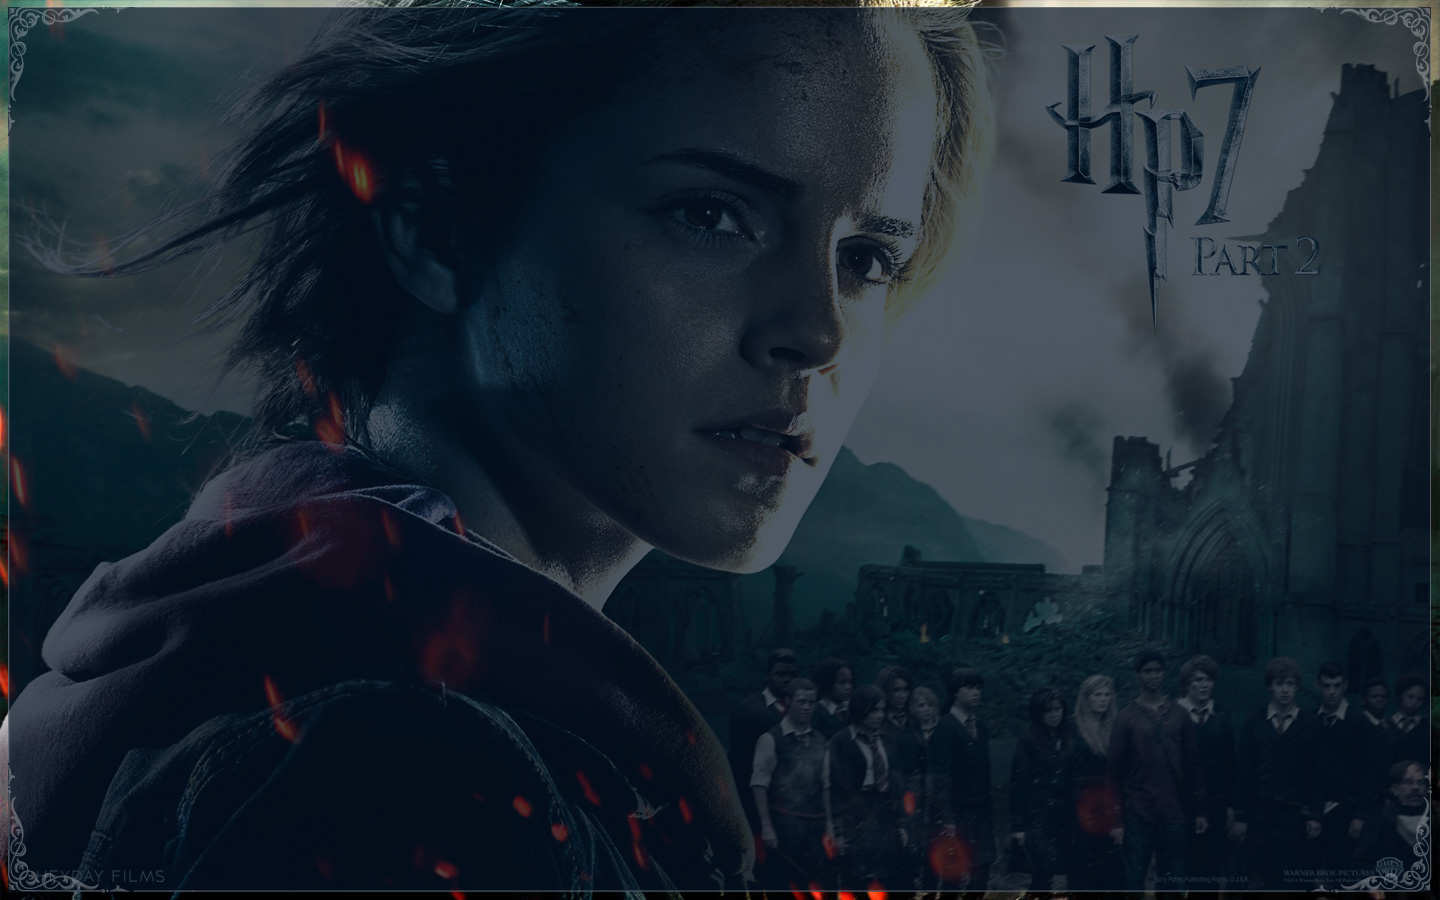 Harry Potter And The Deathly Hallows Part 2 Wallpaper - Harry Potter And The Deathly Hallows: Part Ii (2011) - HD Wallpaper